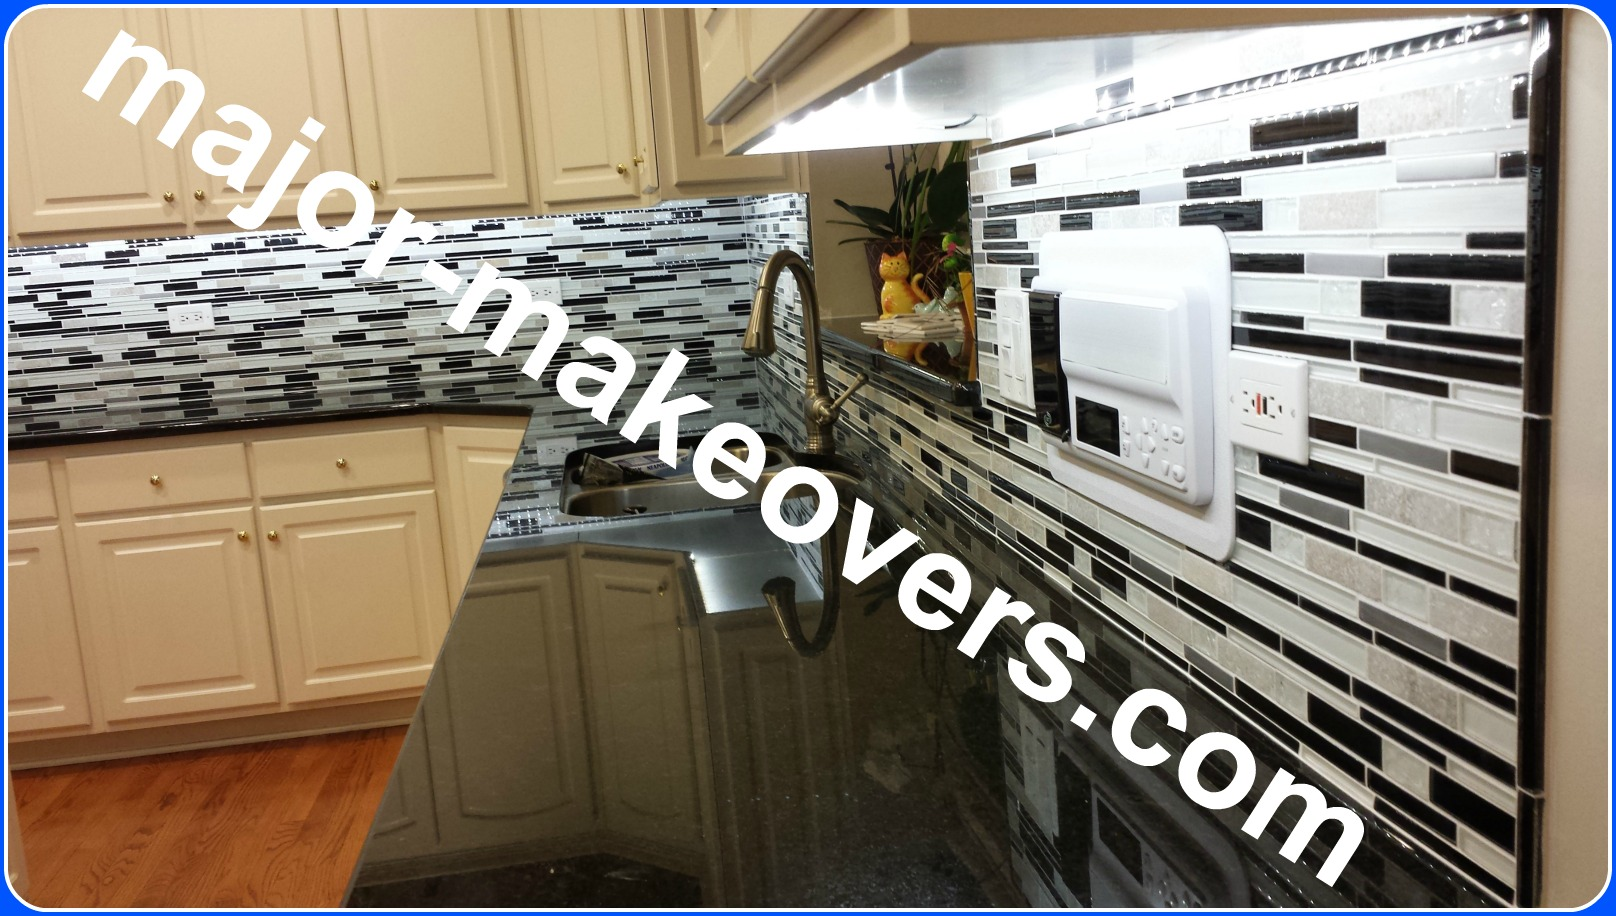 Beautiful bright backsplash tile seen from the end of the countertop at its level. White sealed grout & black glass trim complete this Hinsdale backsplash. #HinsdaleTileInstallation #TileInstall60521